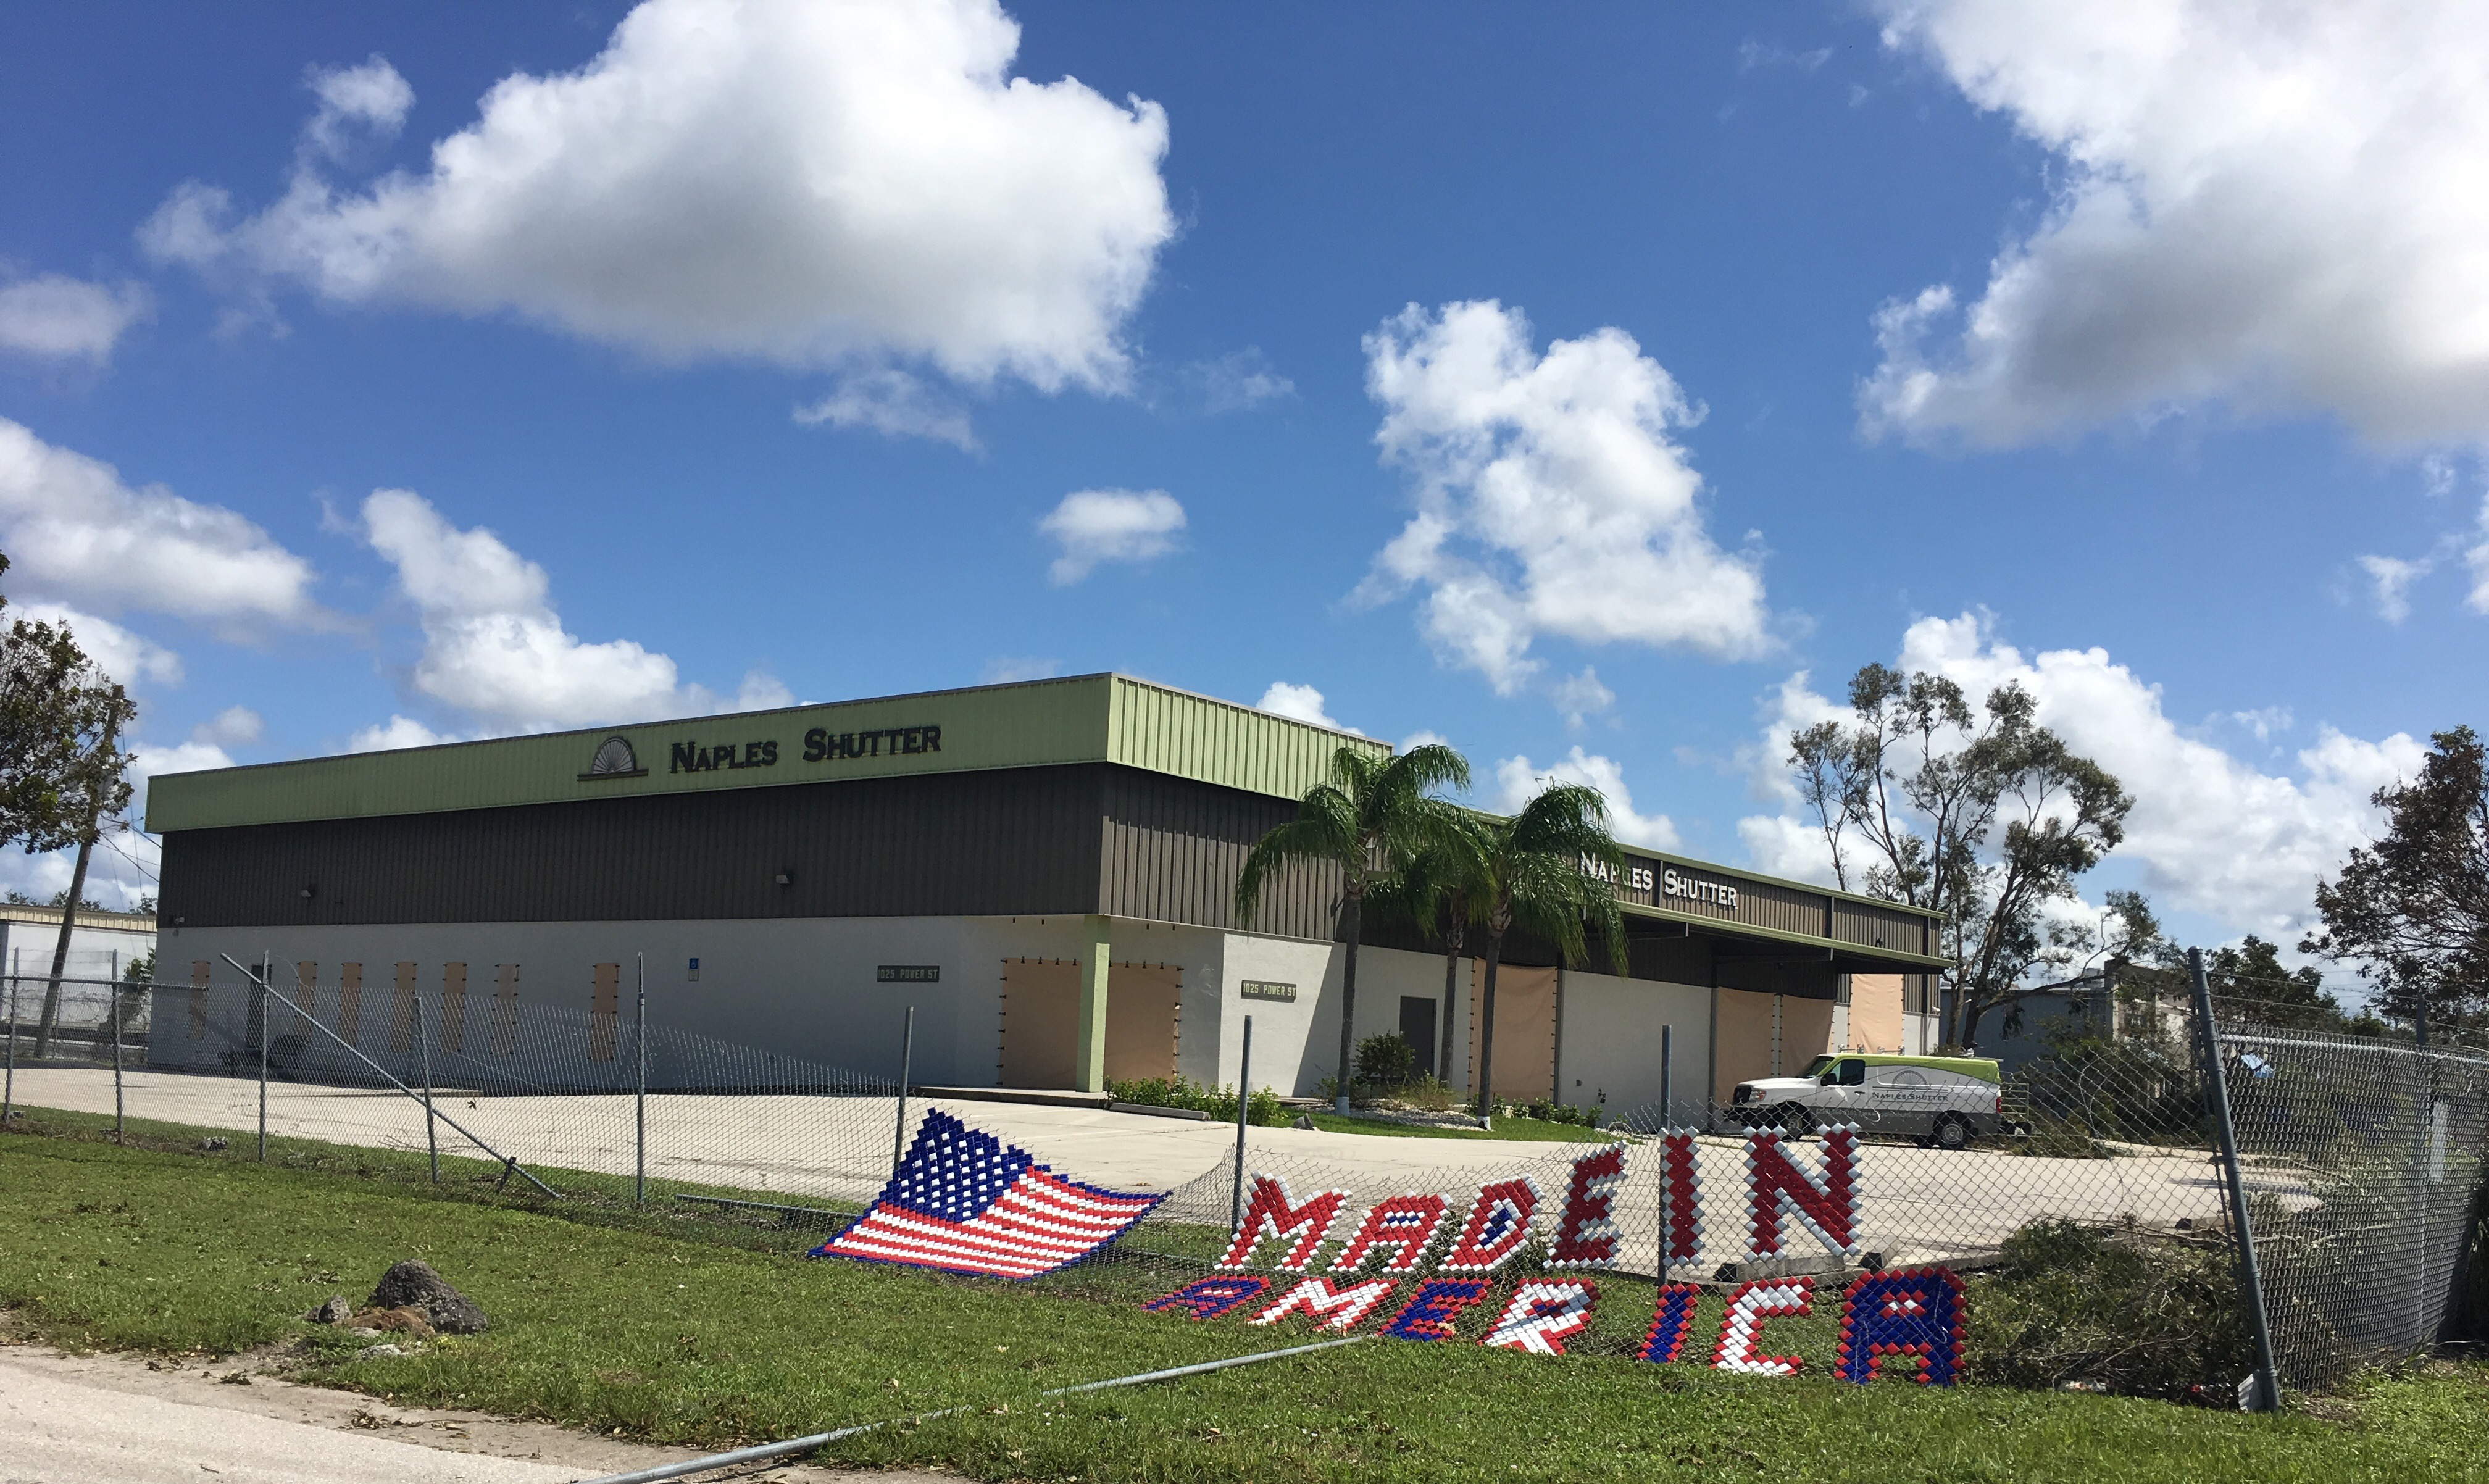 Naples, Florida, November 16th, 2017u2014Plantation Shutter Manufacturer And  Hurricane Product Provider, Naples Shutter Announces Today That It Will  Donate ...